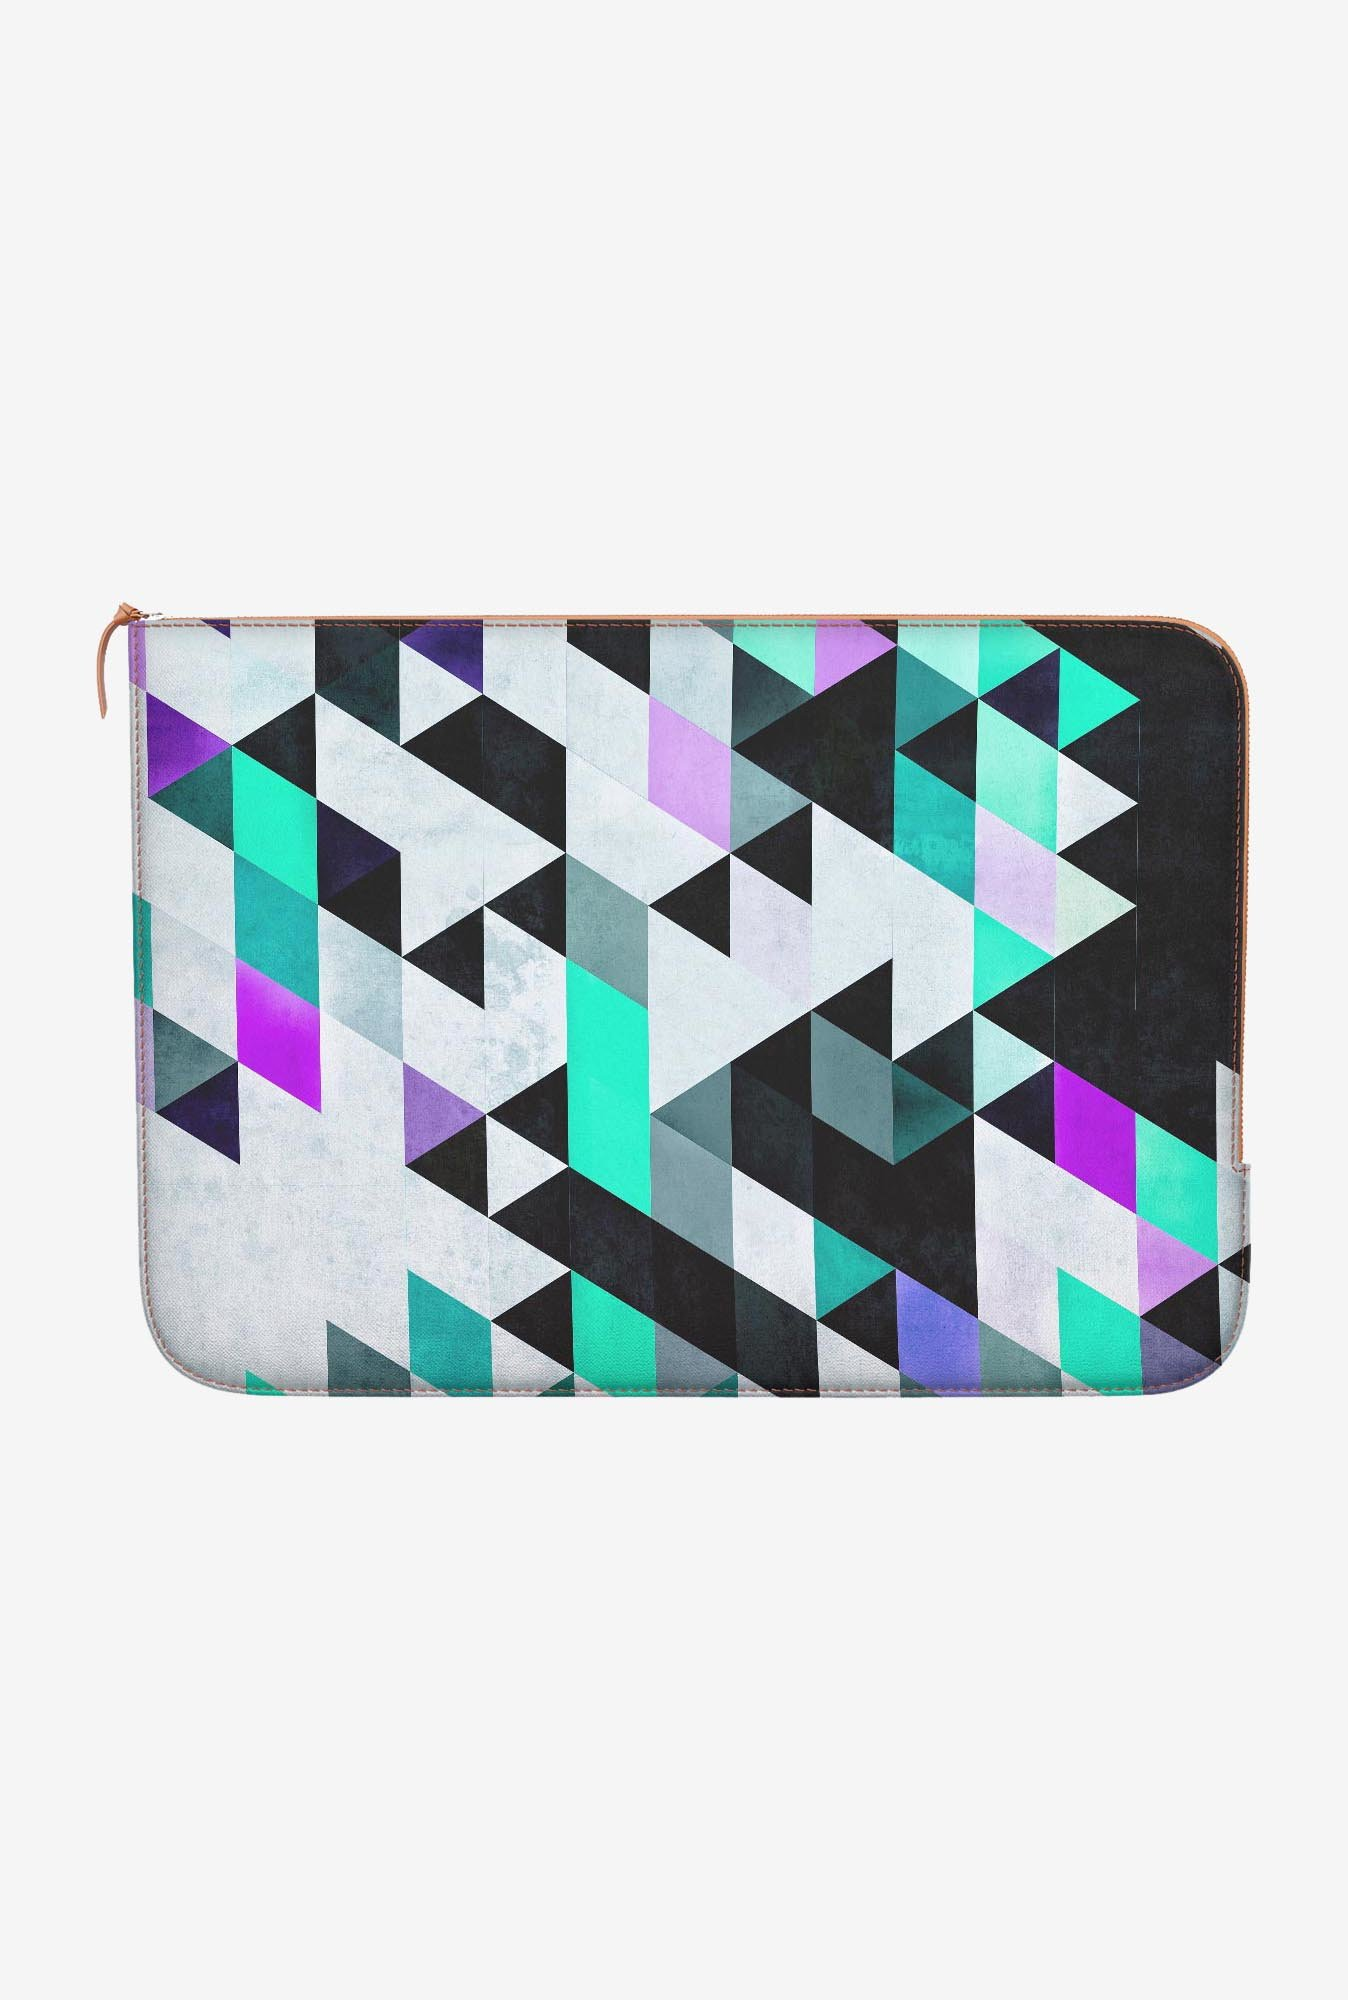 DailyObjects xyan tryp MacBook Pro 15 Zippered Sleeve